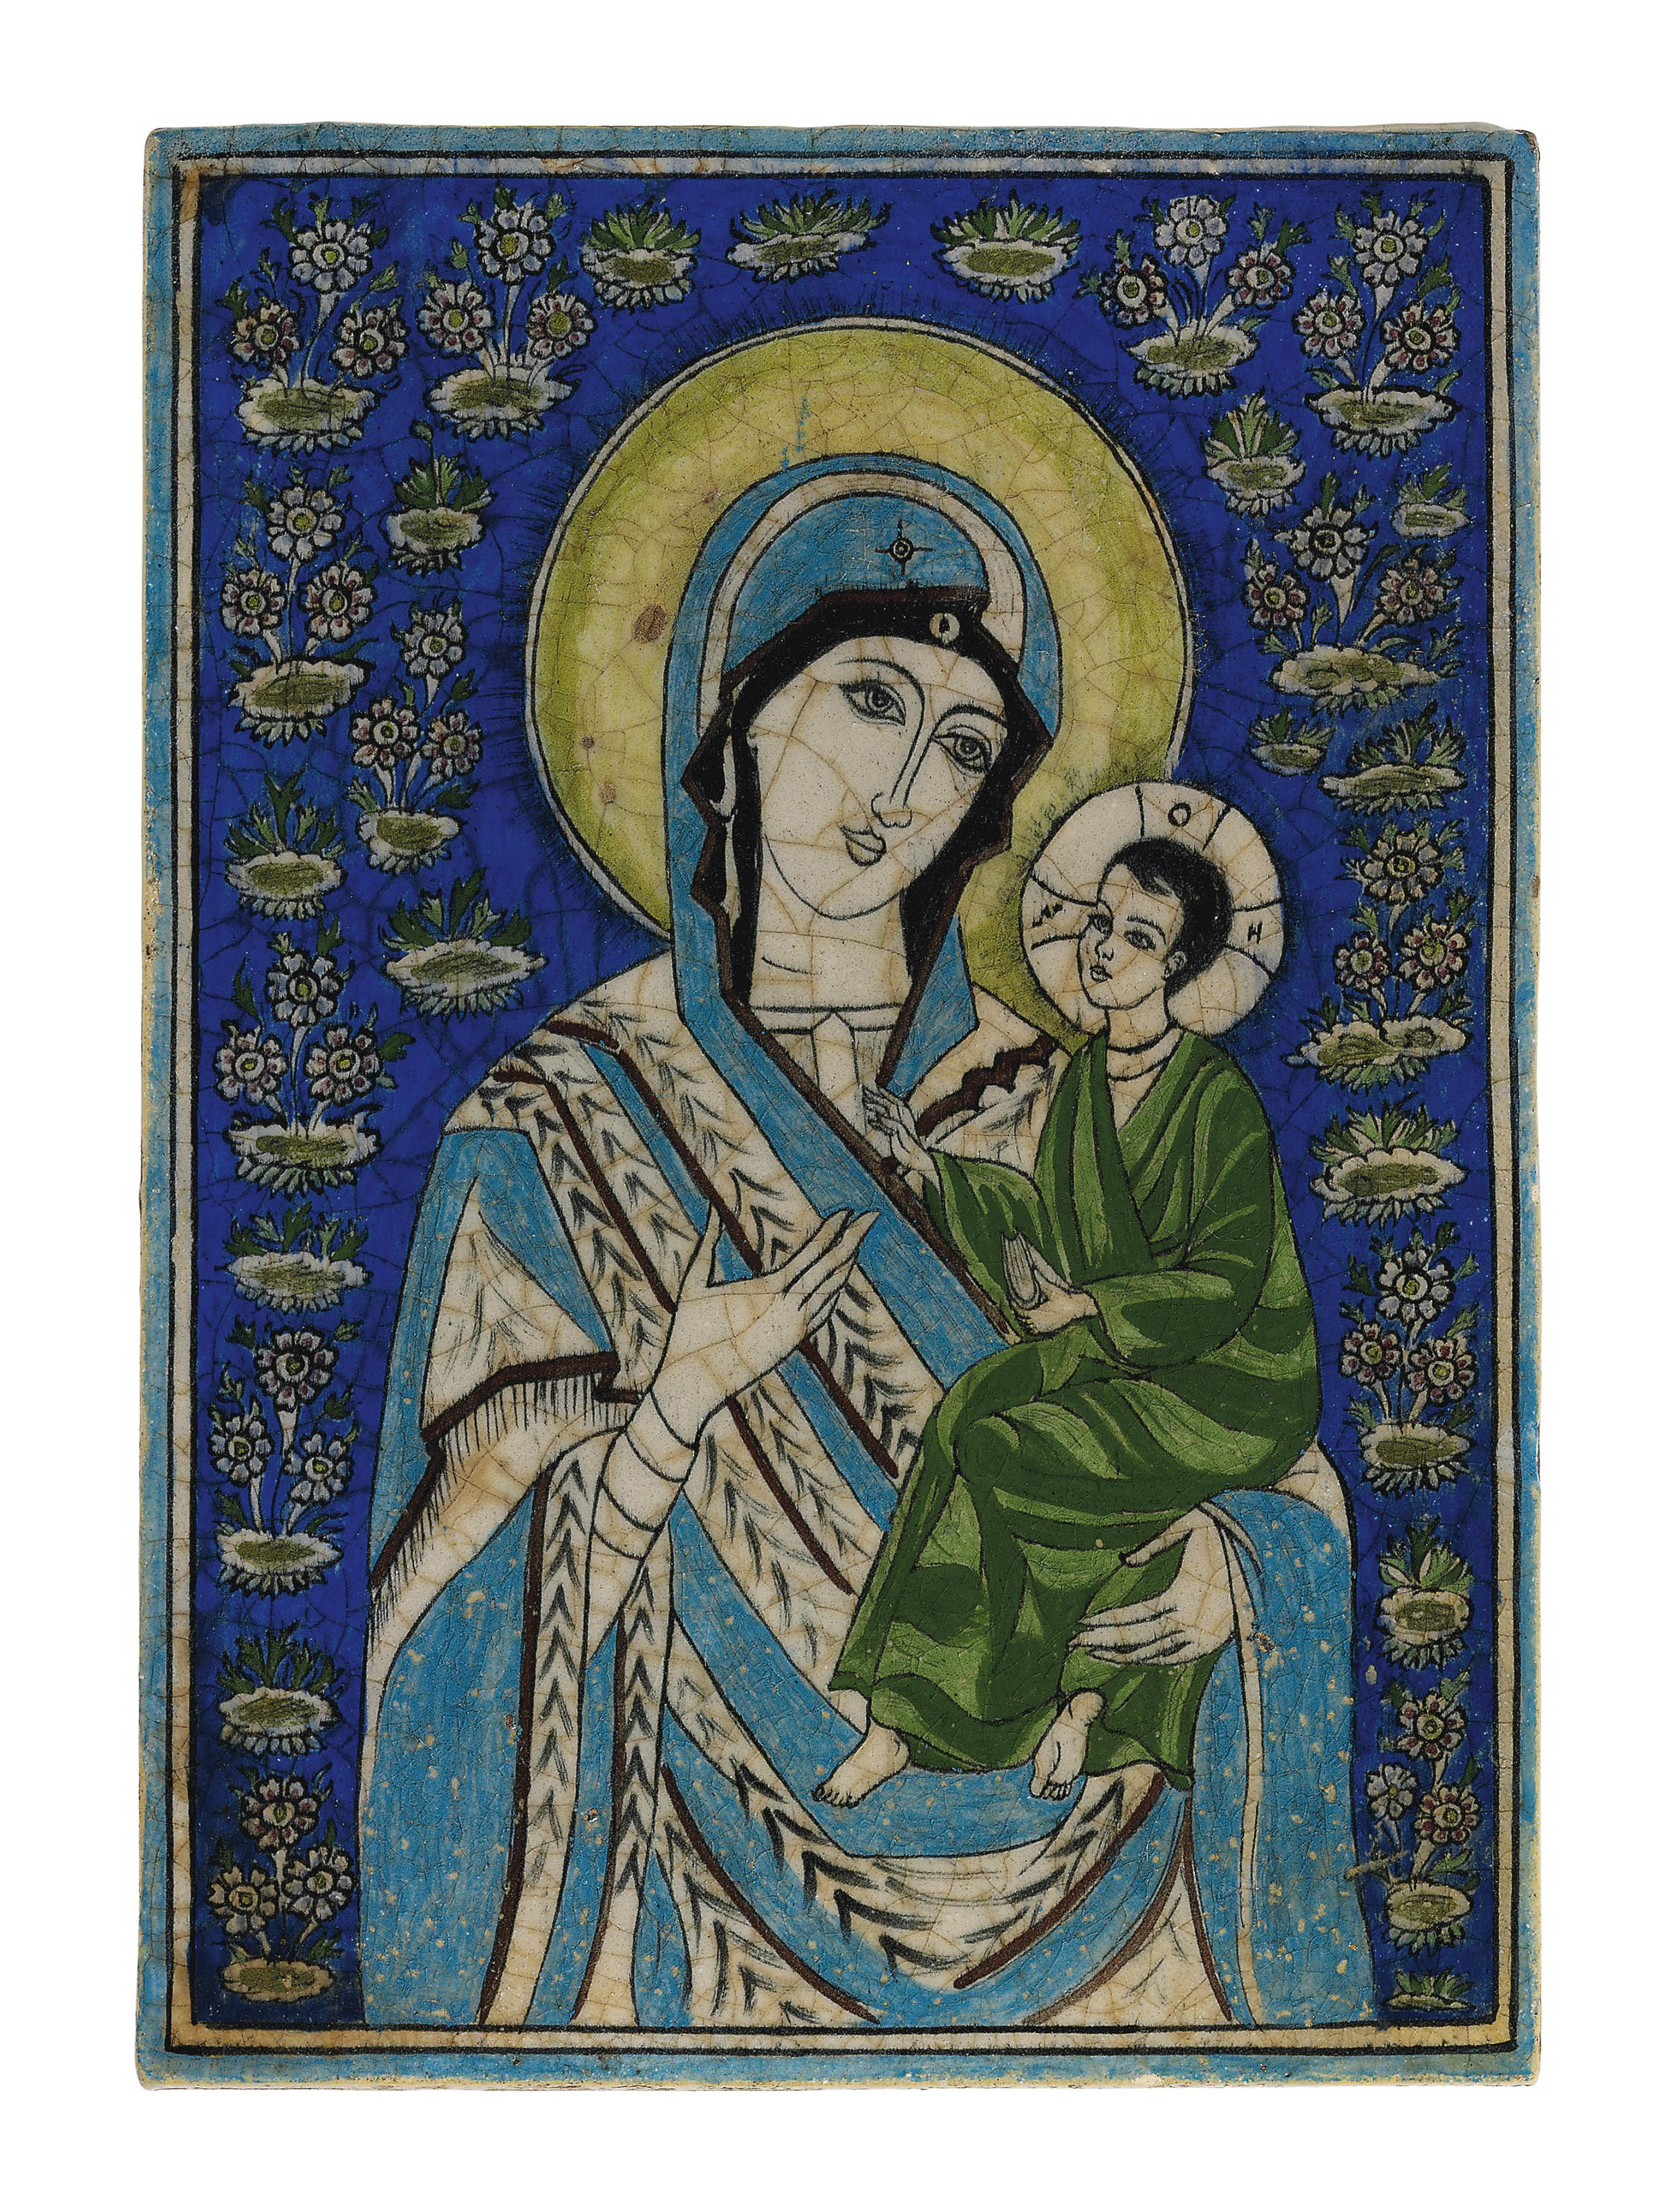 A QAJAR POTTERY TILE WITH THE VIRGIN MARY AND CHILD